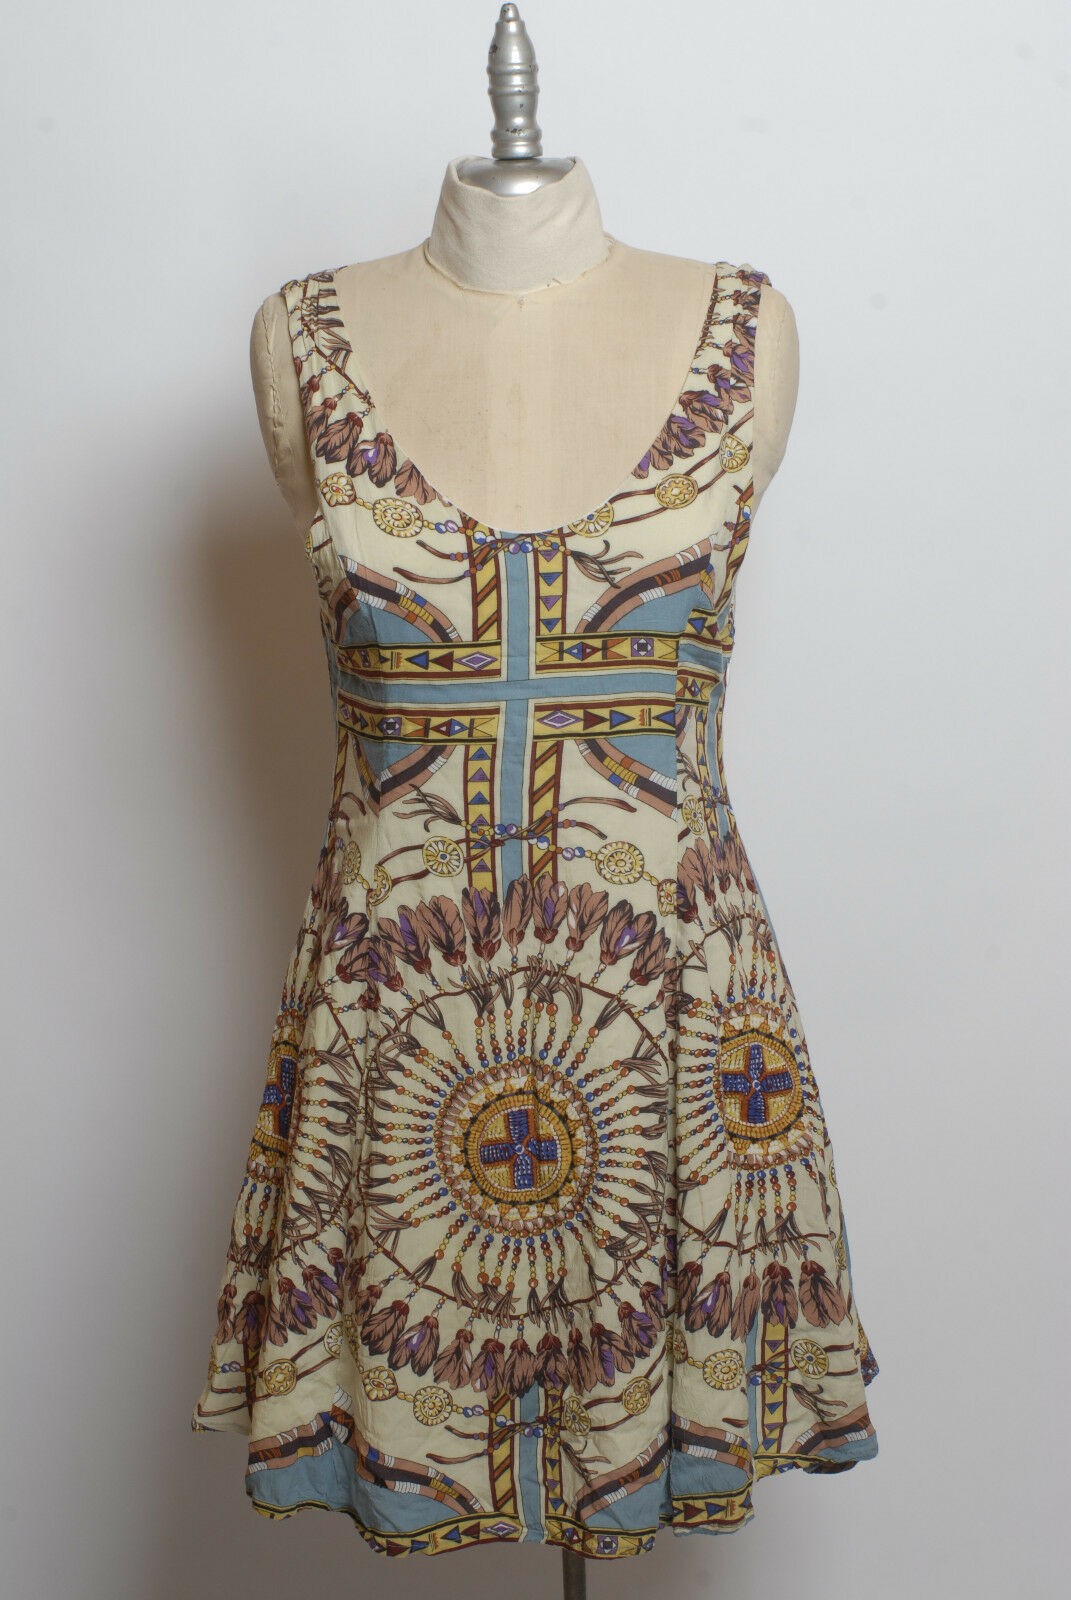 We All Shine By MINKPINK Tared Reader Dress Size M